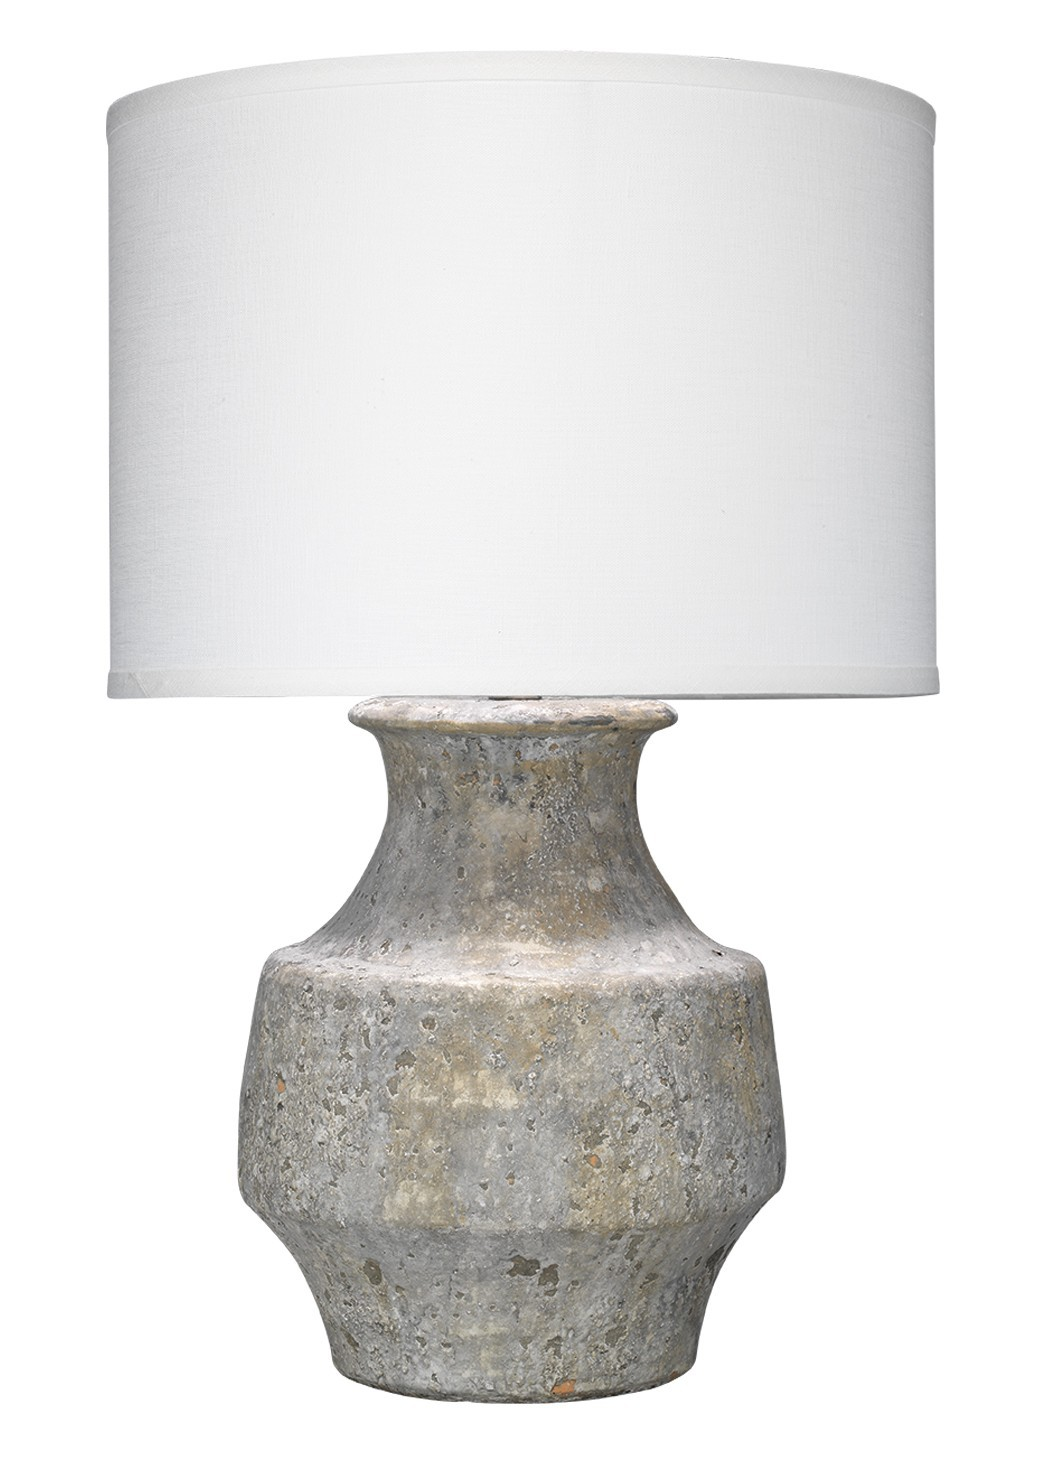 Jamie young masonry table lamp w classic drum shade tuvalu jamie young masonry table lamp w classic drum shade mozeypictures Image collections